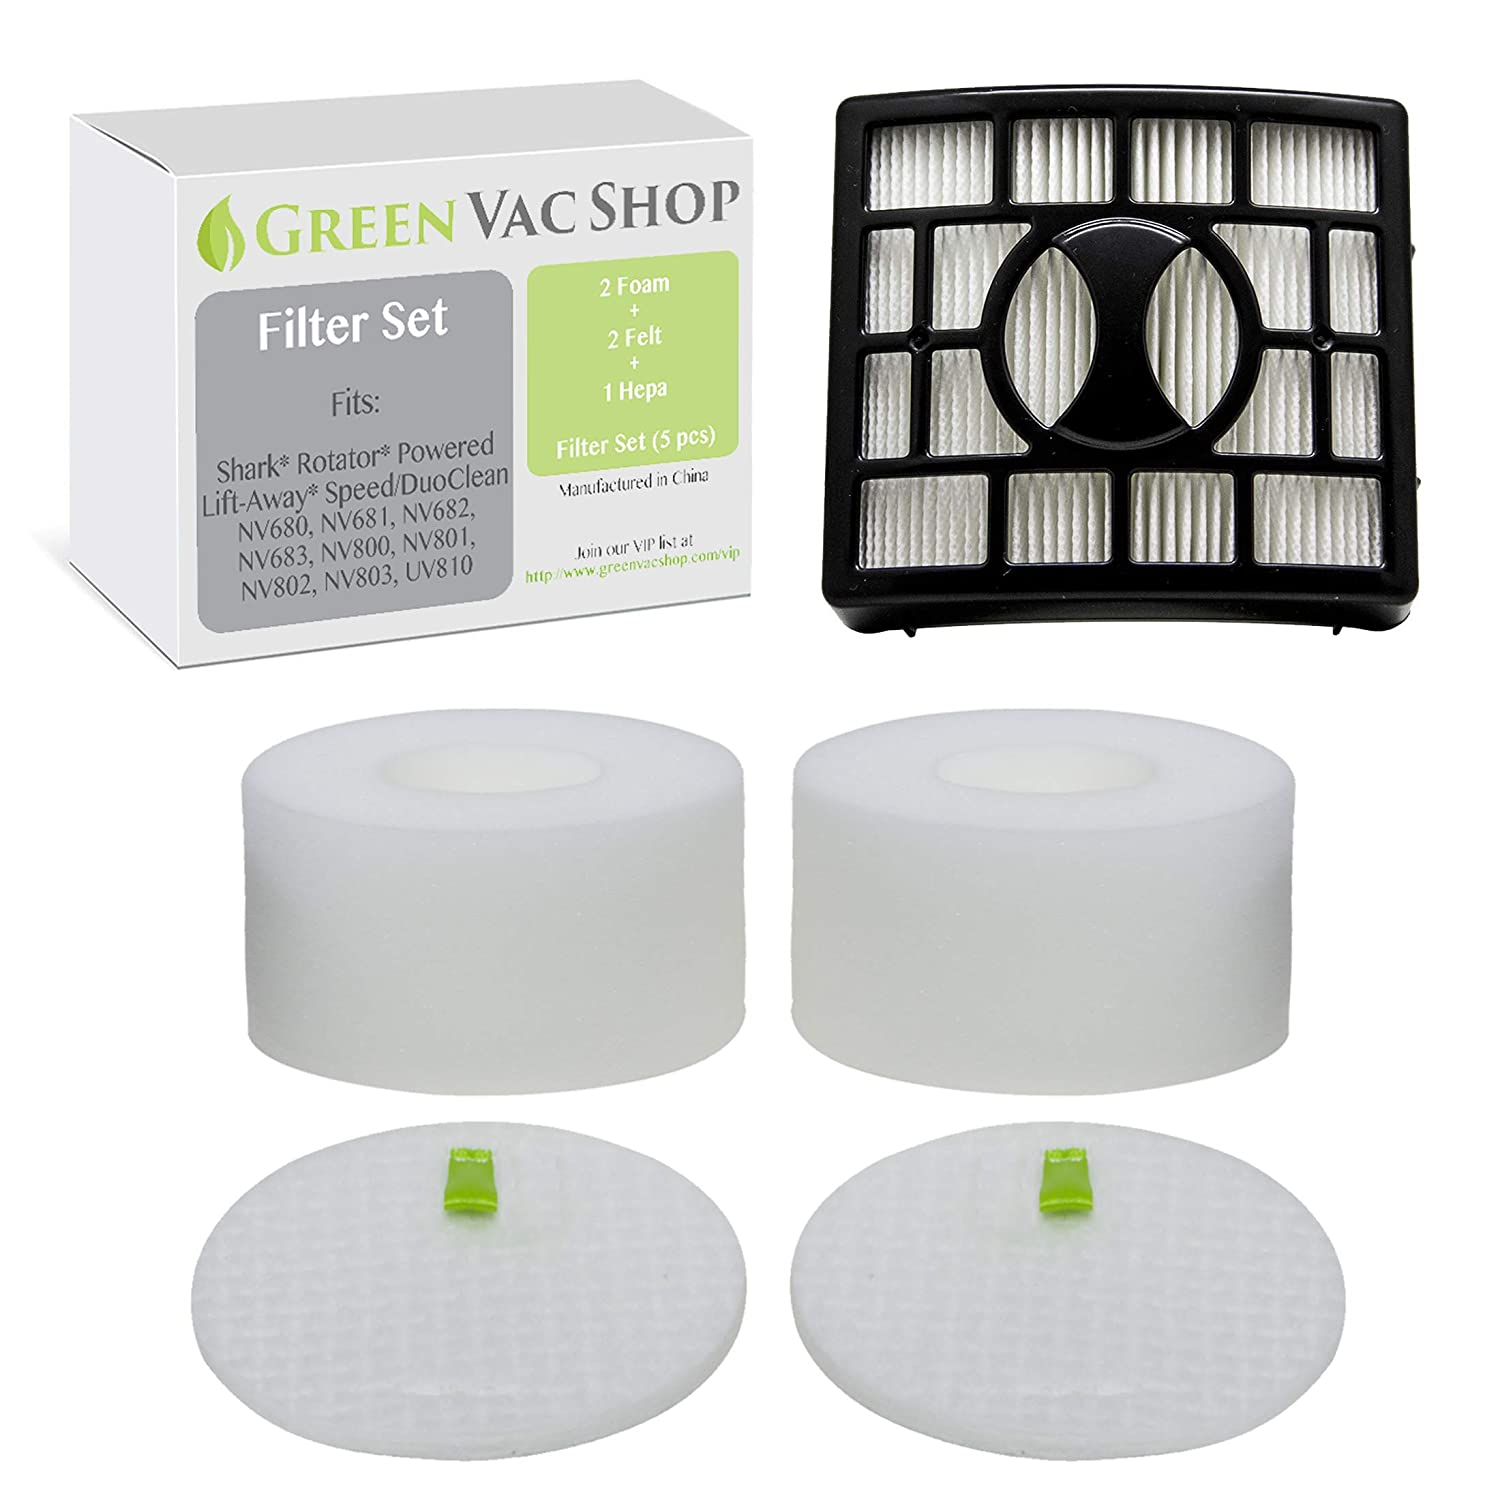 GreenVacShop 2 Foam + 2 Felt + 1 HEPA Replacement Filter Set for Shark Rotator DuoClean Powered Lift Away Speed Vacuum NV680, NV681, NV682, NV683, NV800, NV801, NV803, UV810, Filters XFF680 XHF680